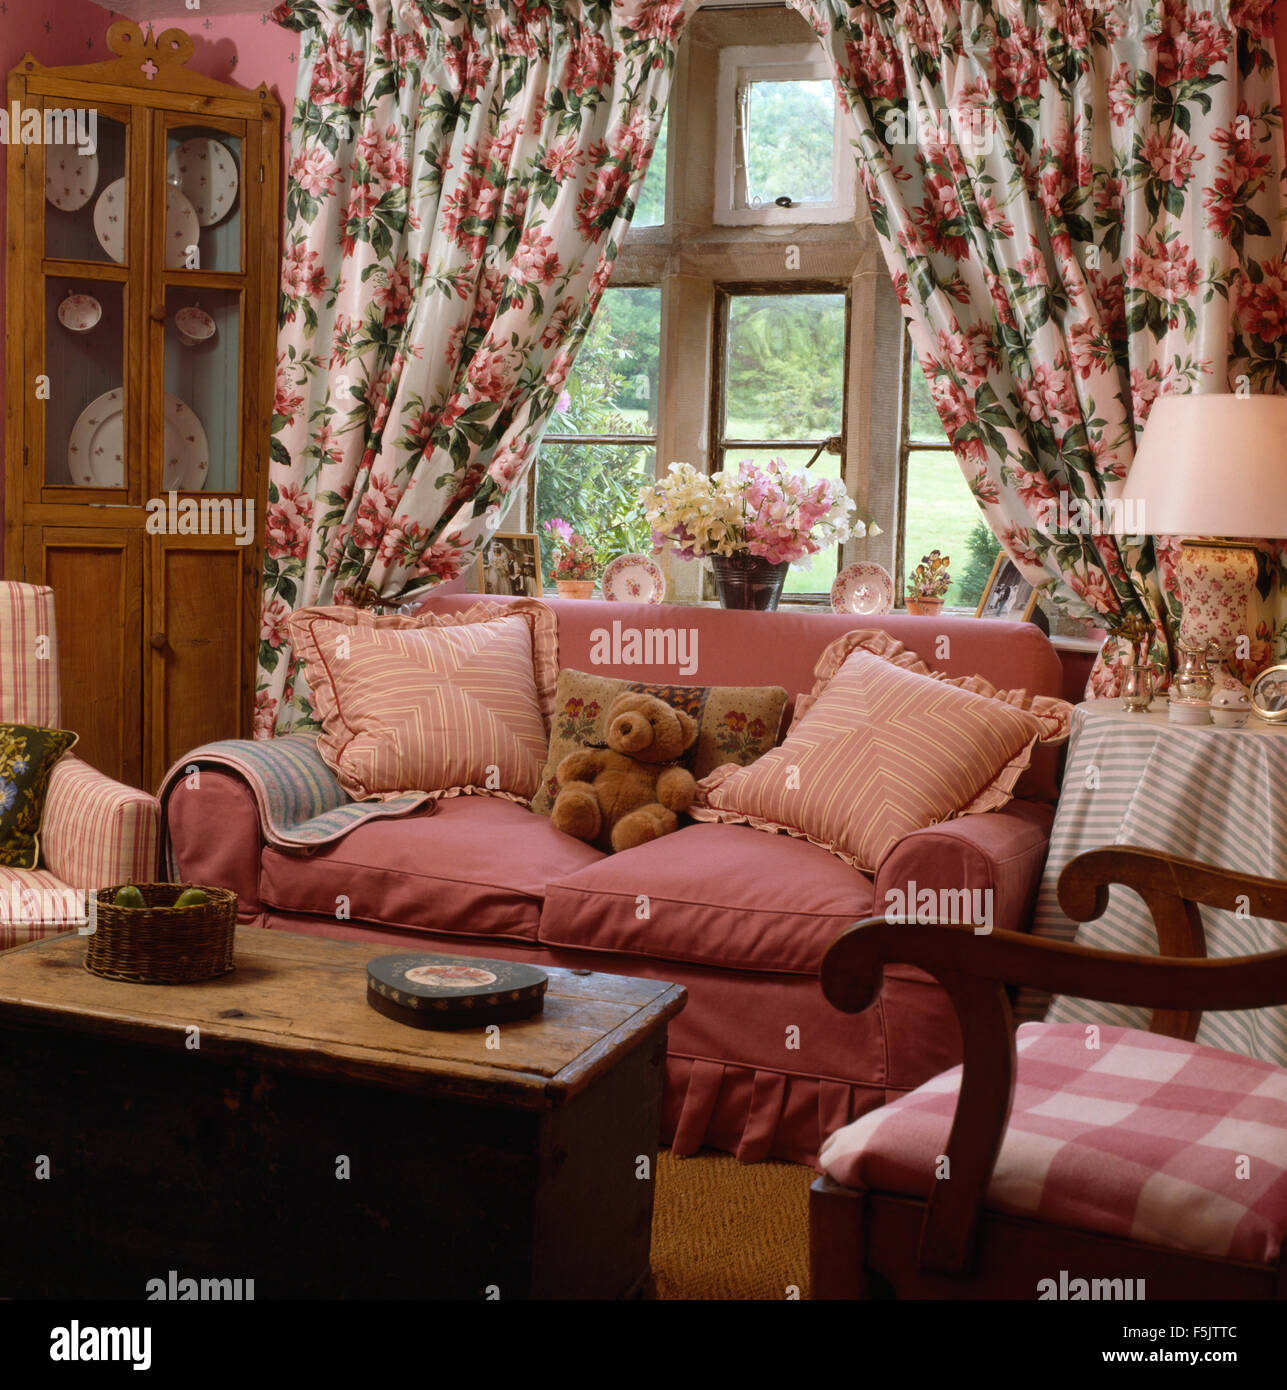 Floral curtains on window behind a pink sofa in country living ...